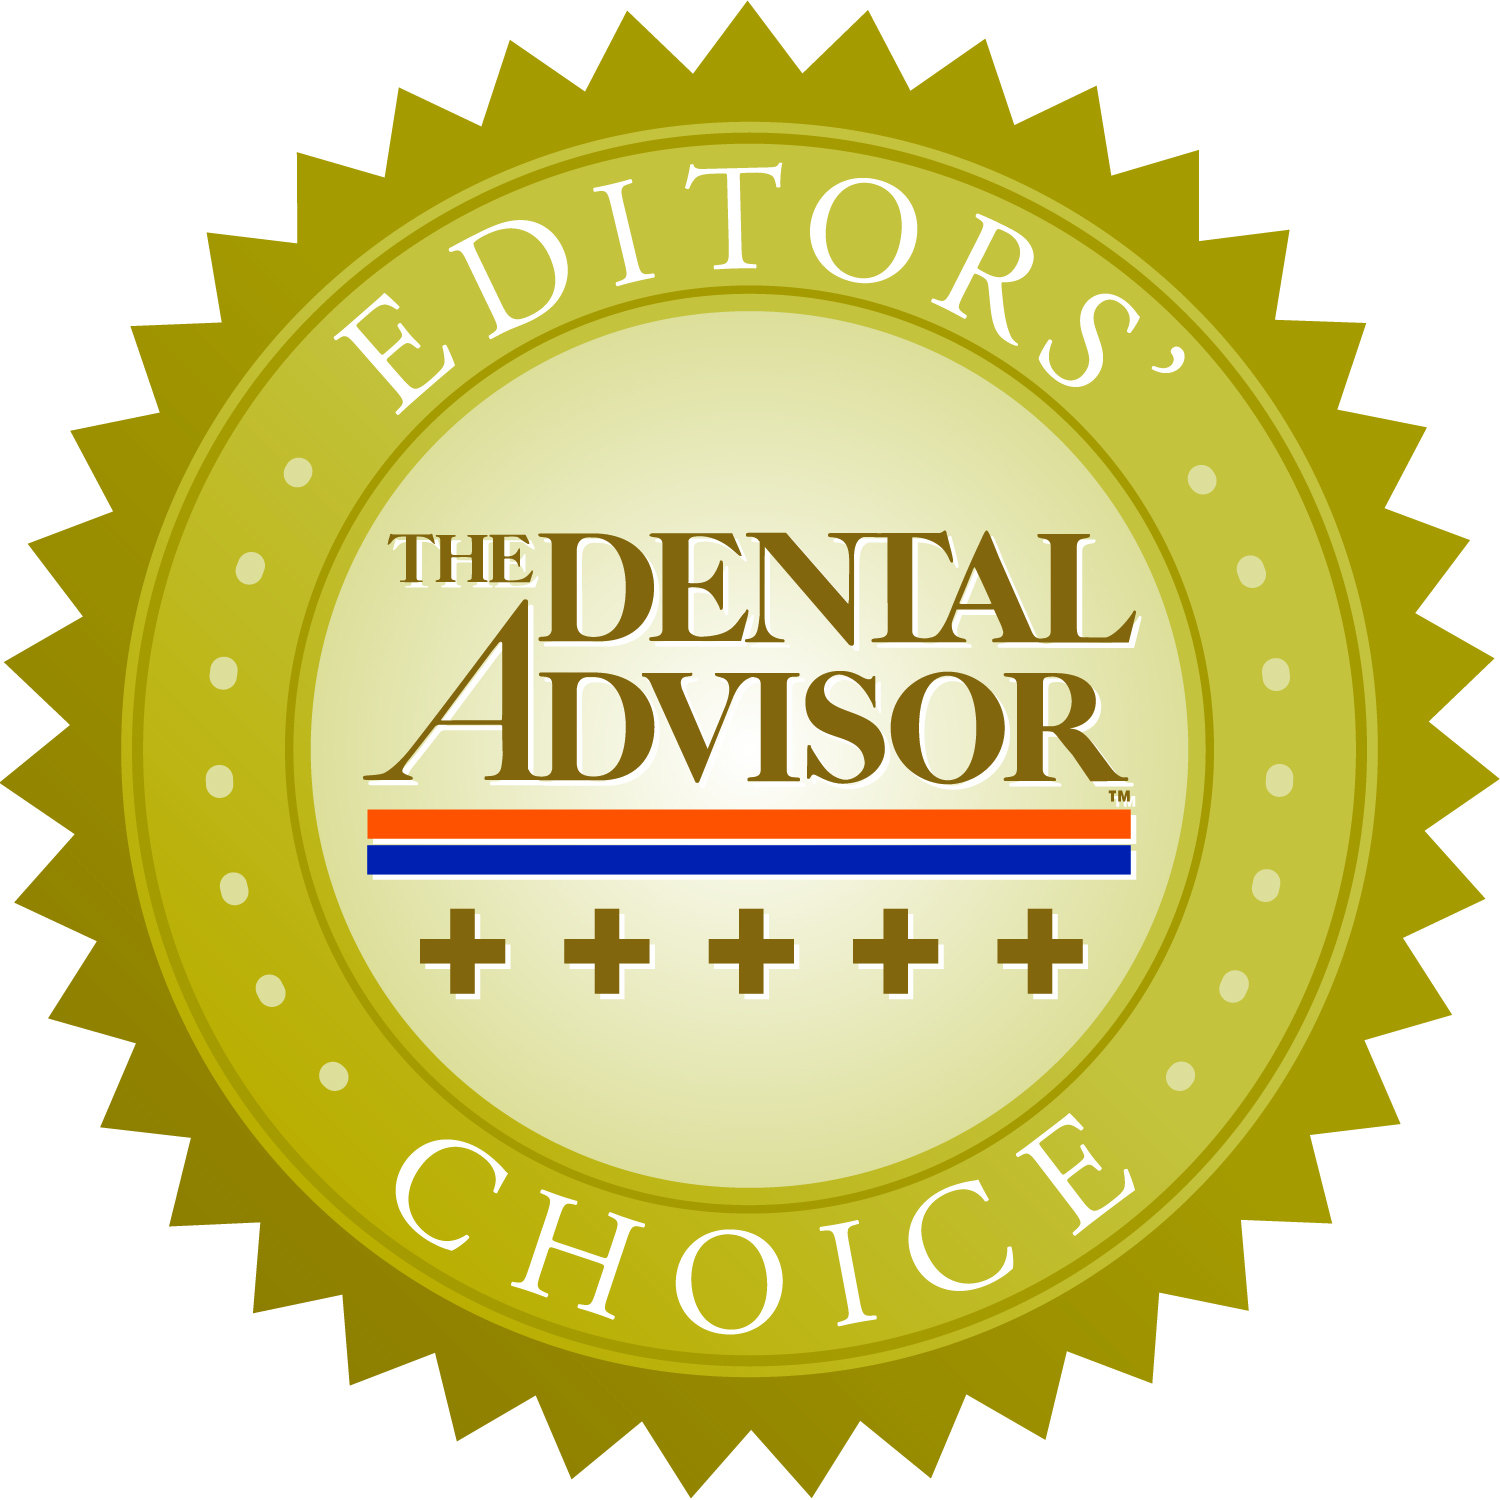 Dental Advisor Editors Choice Award